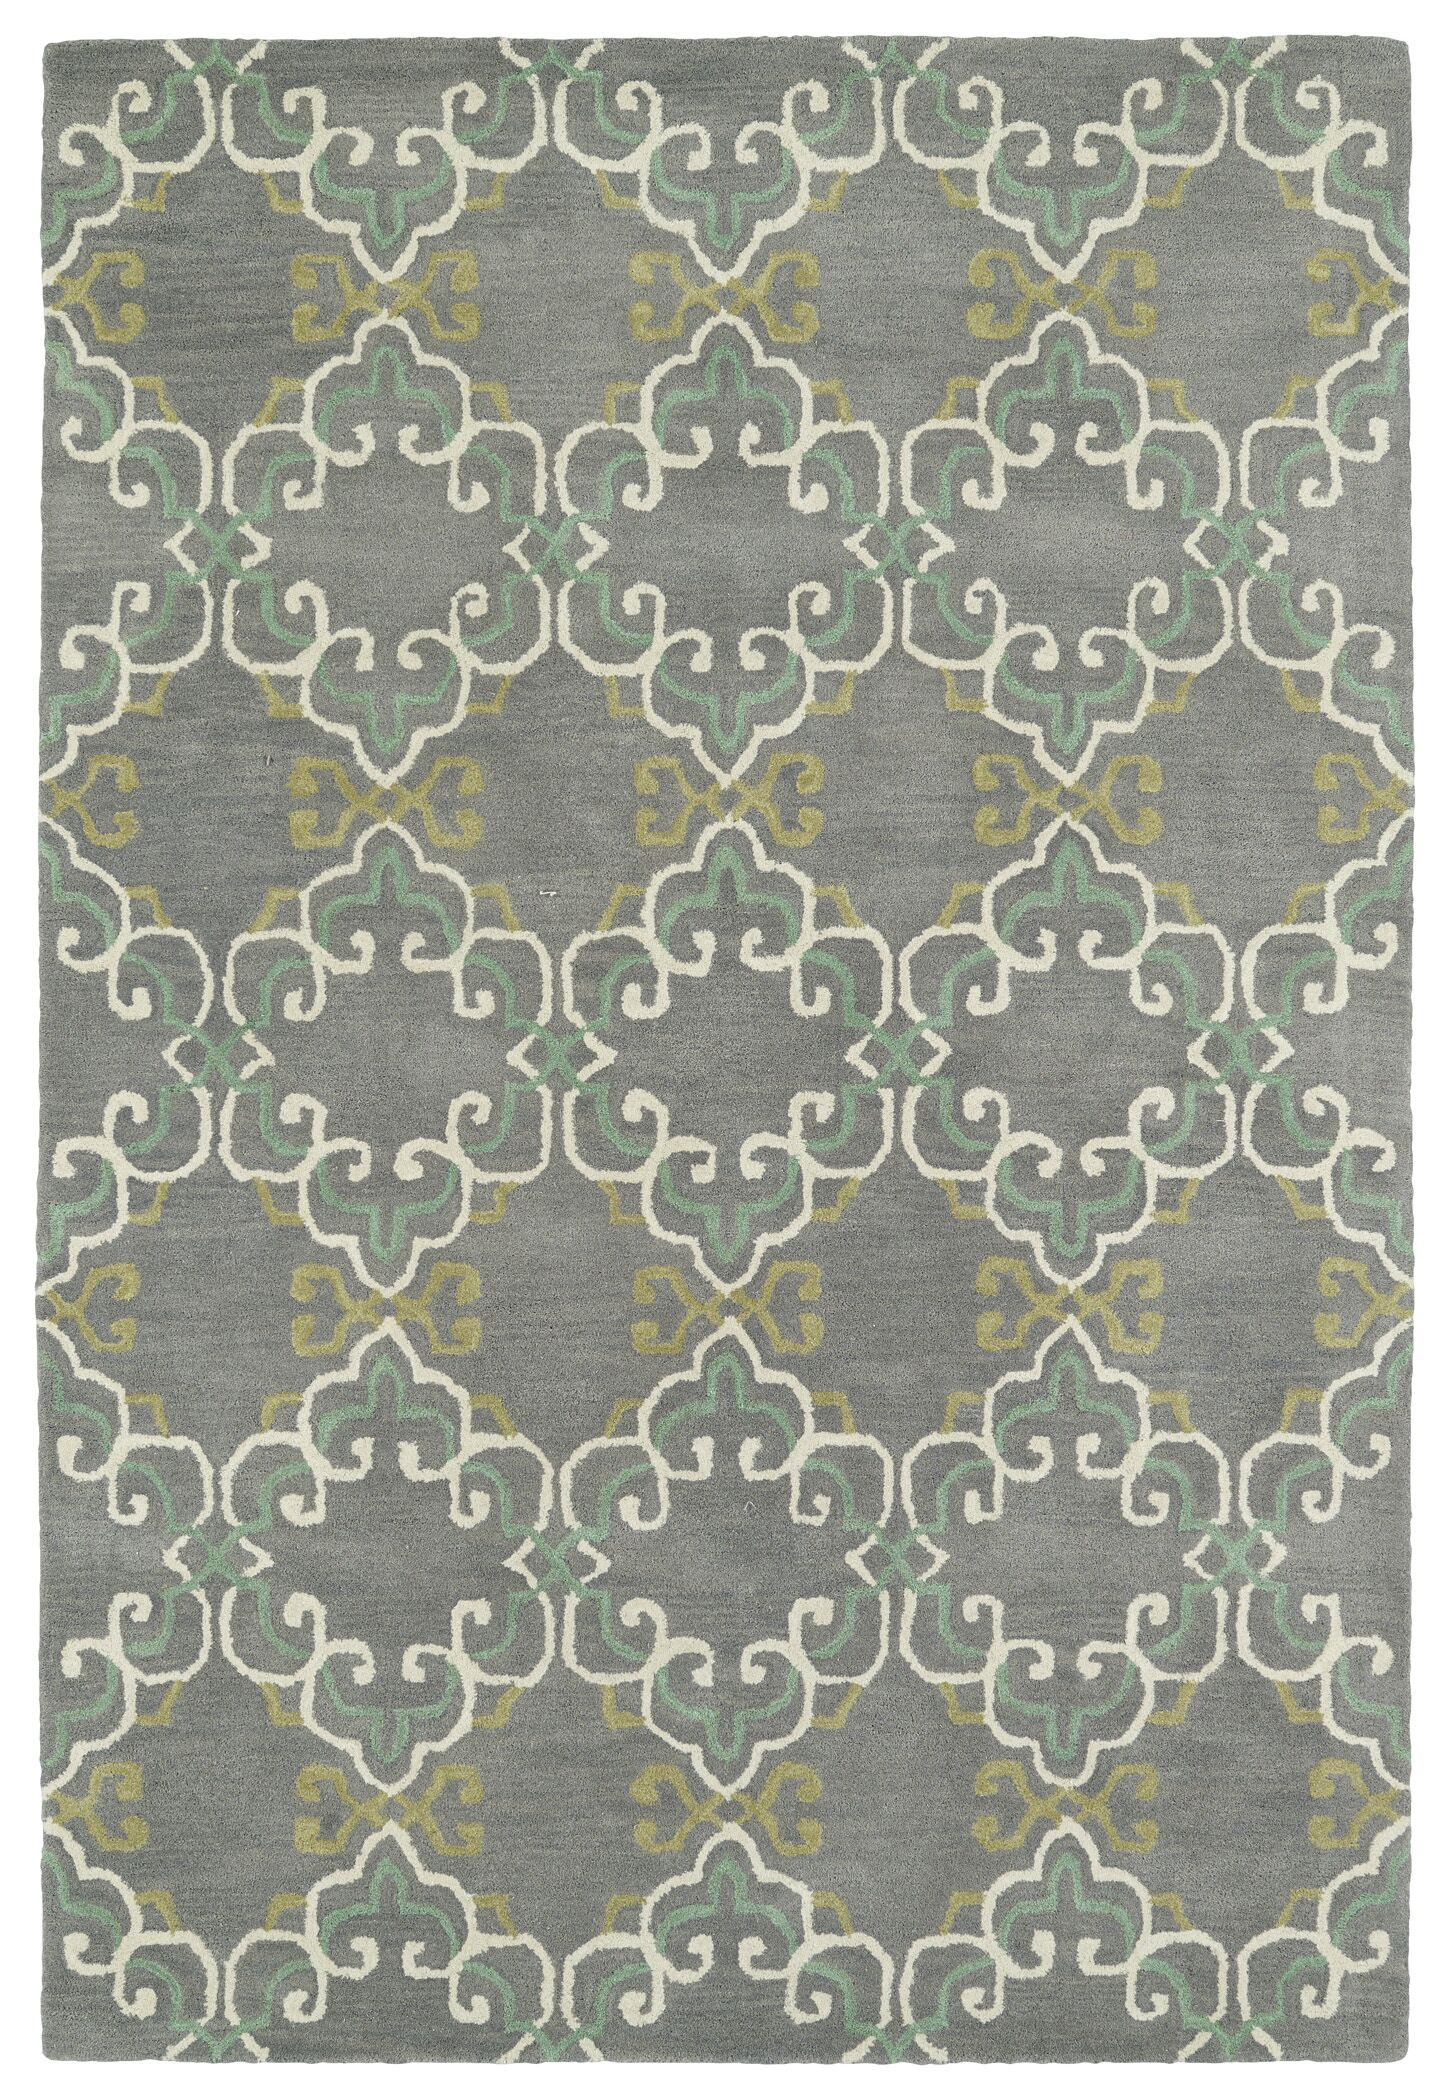 Newburgh Hand-Tufted Area Rug Rug Size: Rectangle 5' x 7'9